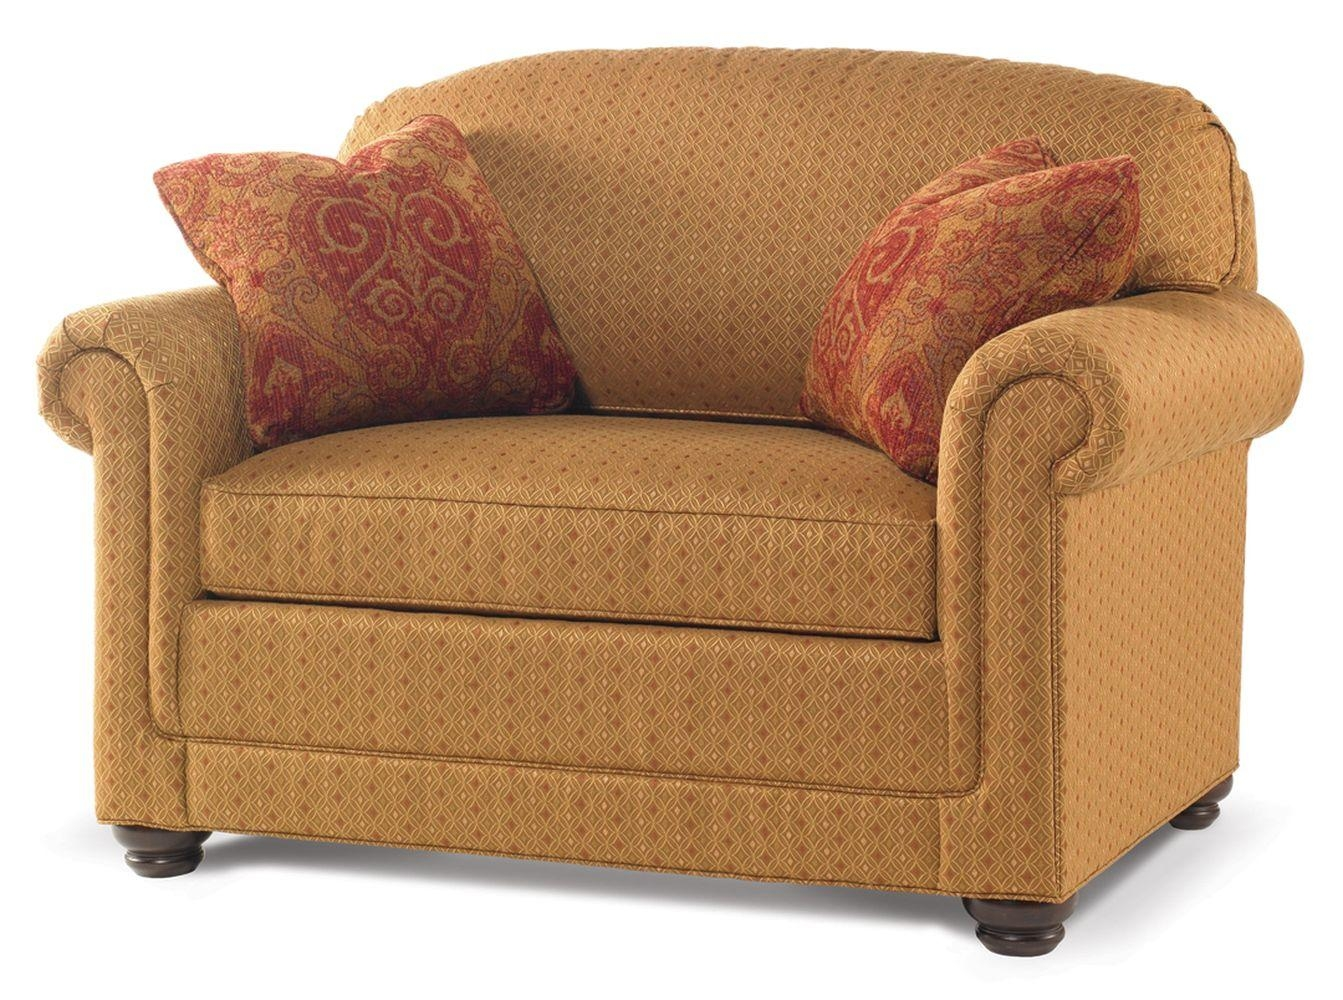 Small Twin Sleeper Sofas Chairs With Pillow And Storage Plus Brown With Regard To Twin Sofa Chairs (Image 9 of 20)